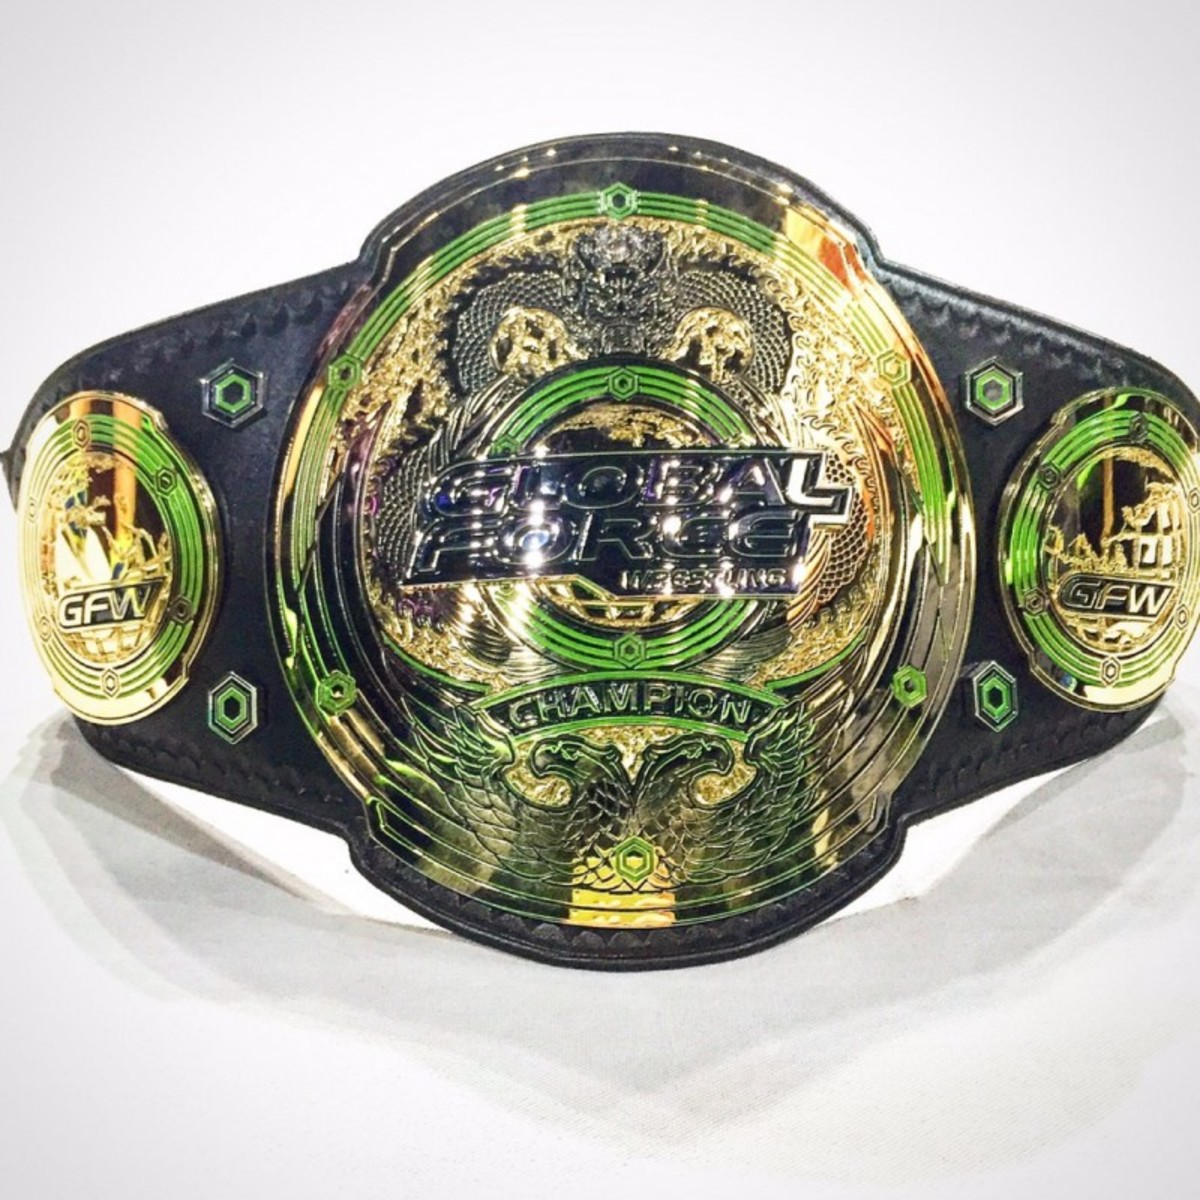 GFW World Title